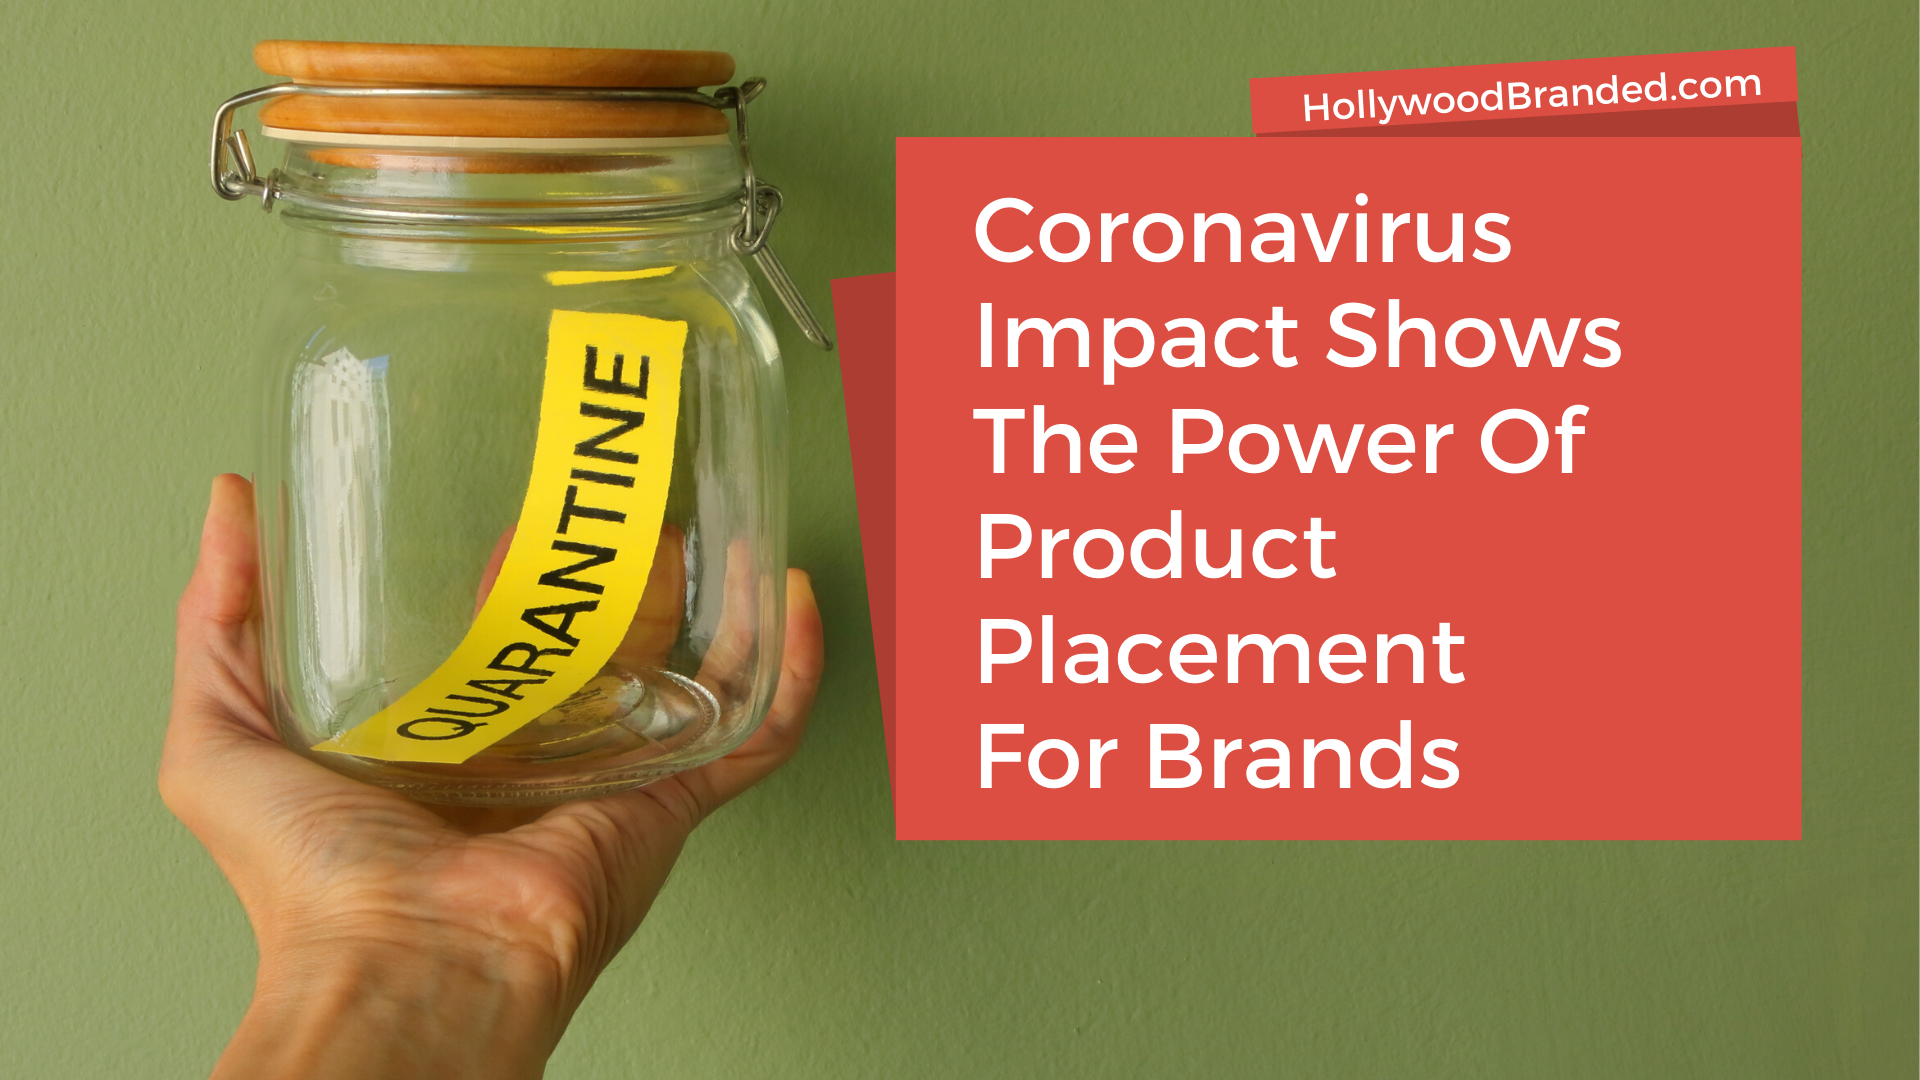 The Coronavirus Impact Shows The Power Of Product Placement Brand Opportunities Hollywood Branded